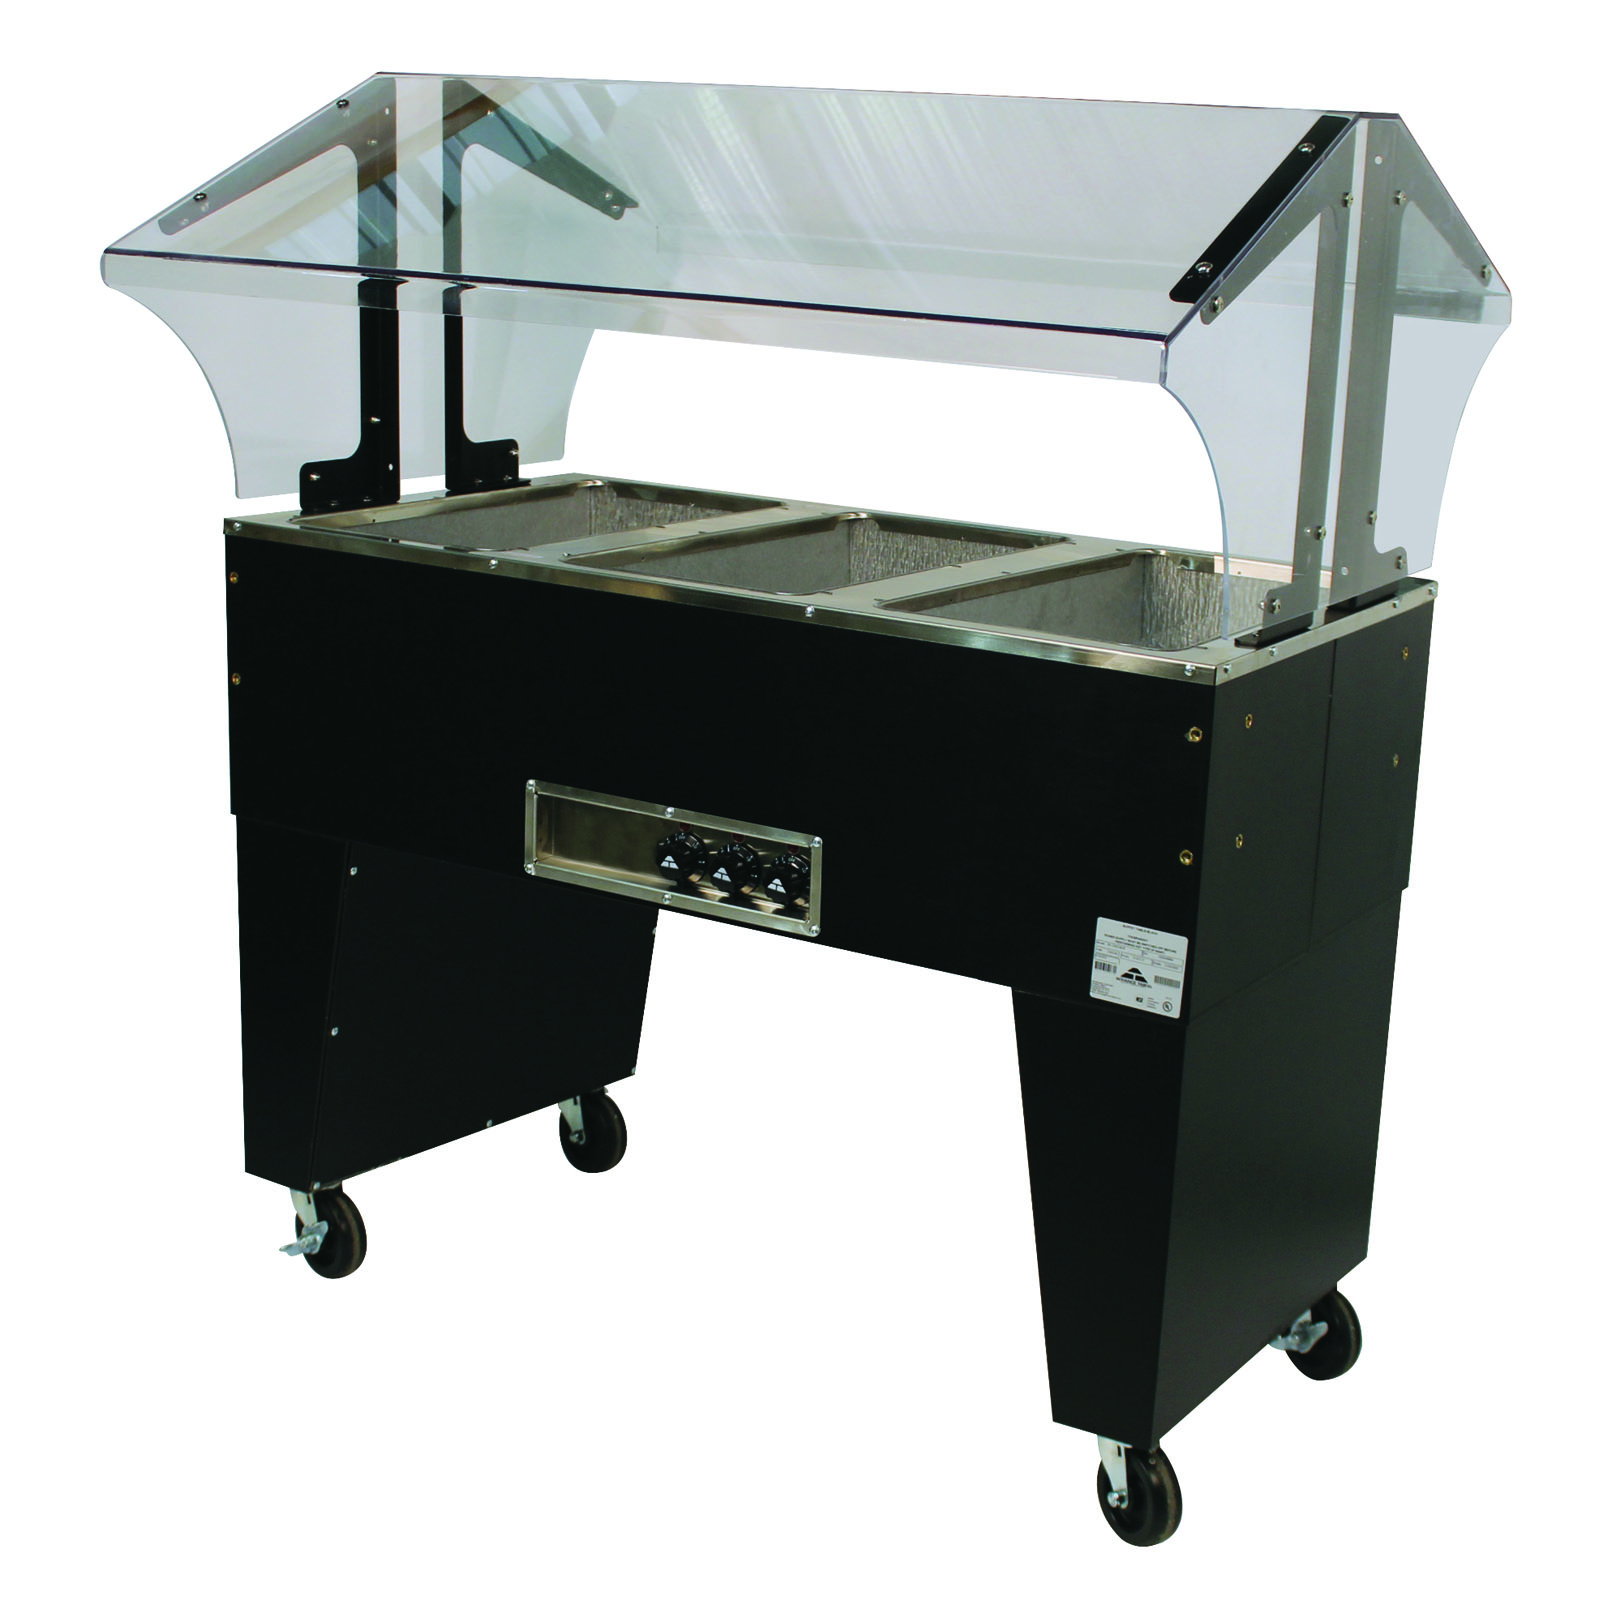 Advance Tabco B3-240-B serving counter, hot food, electric